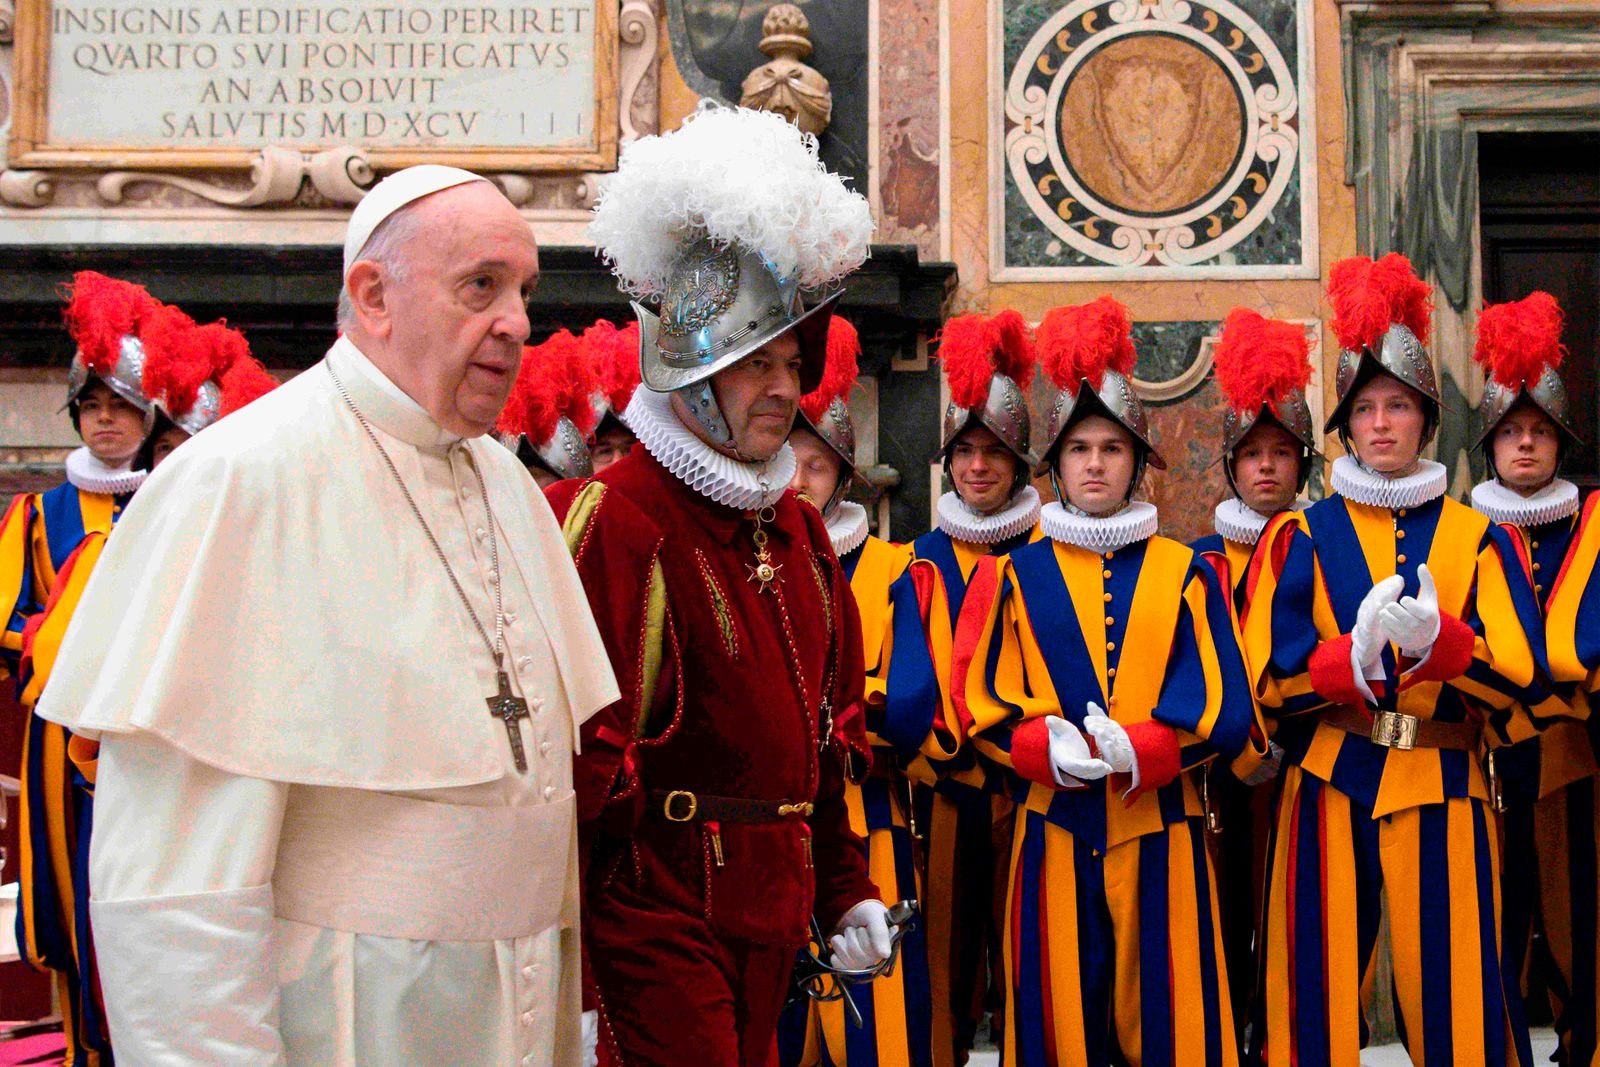 VATICAN-RELIGION-POPE-SWISS-GUARDS-RECRUITS